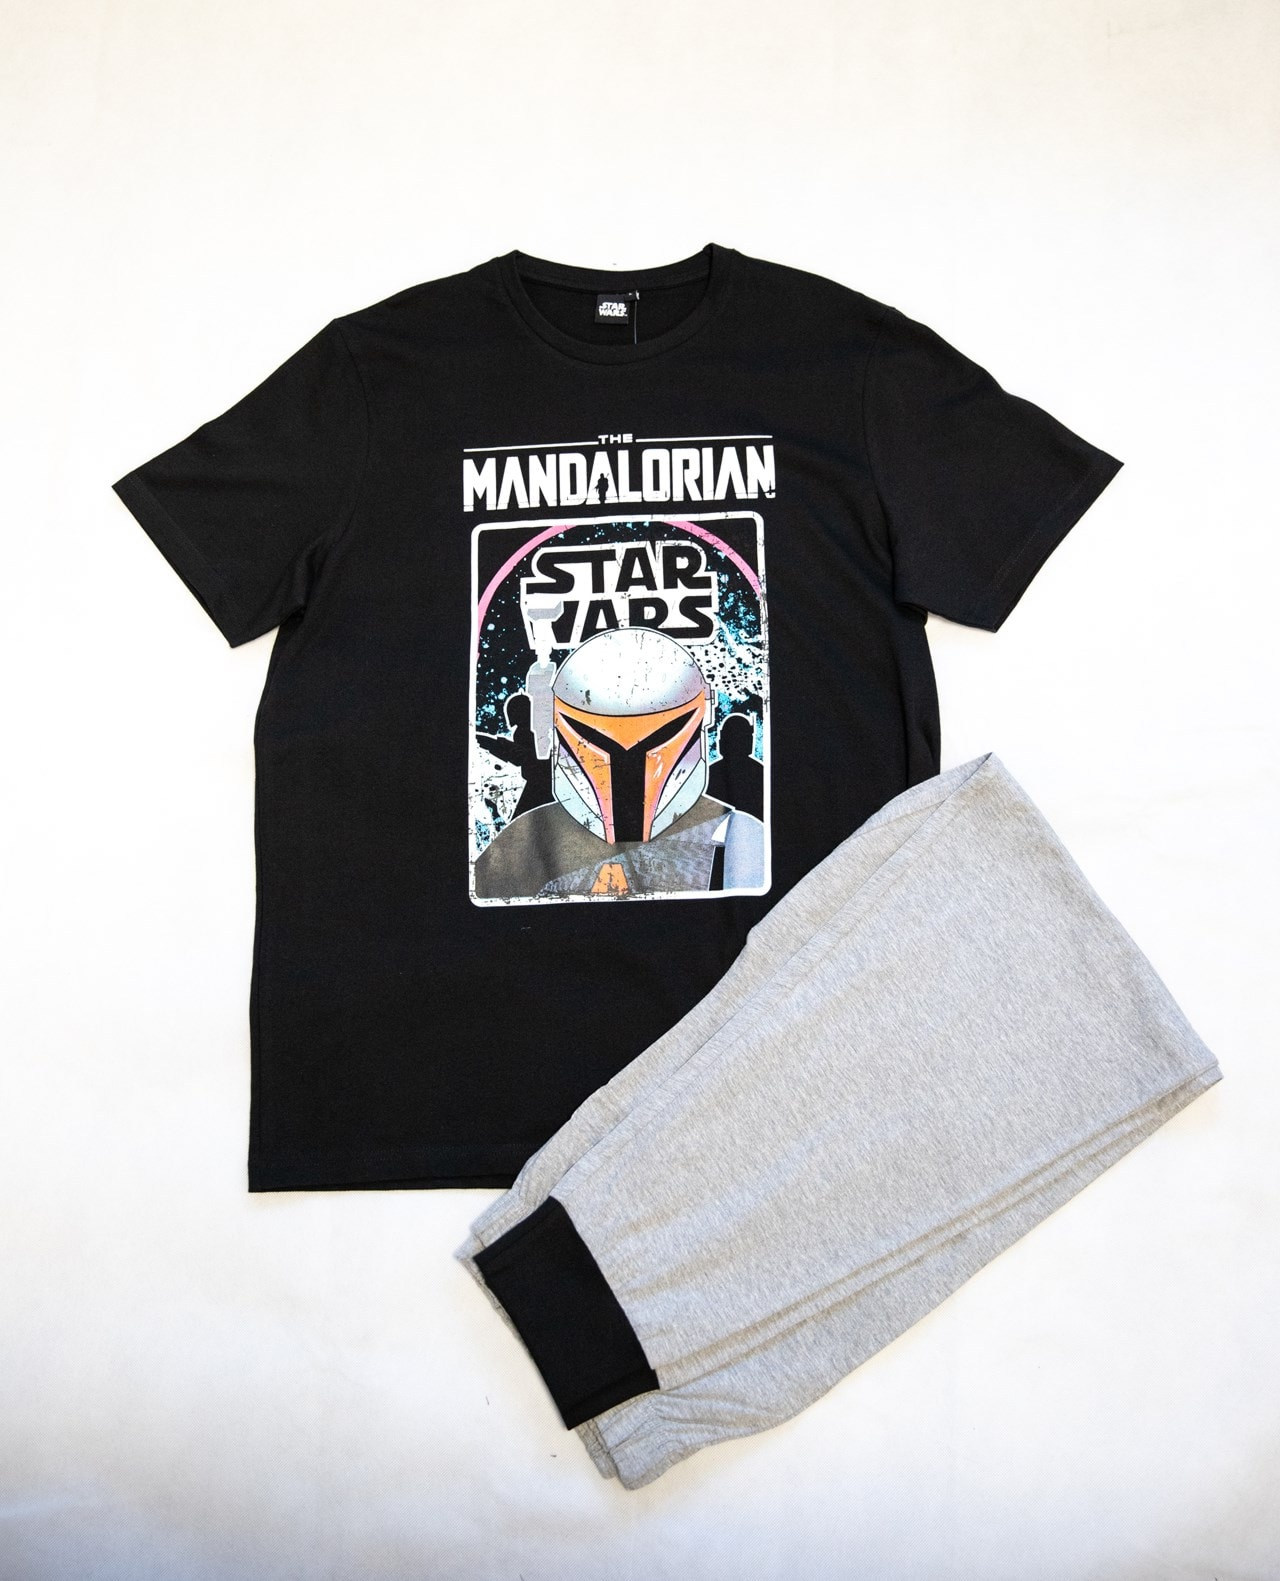 The Mandalorian: Star Wars Pyjama Set (Small) - 1